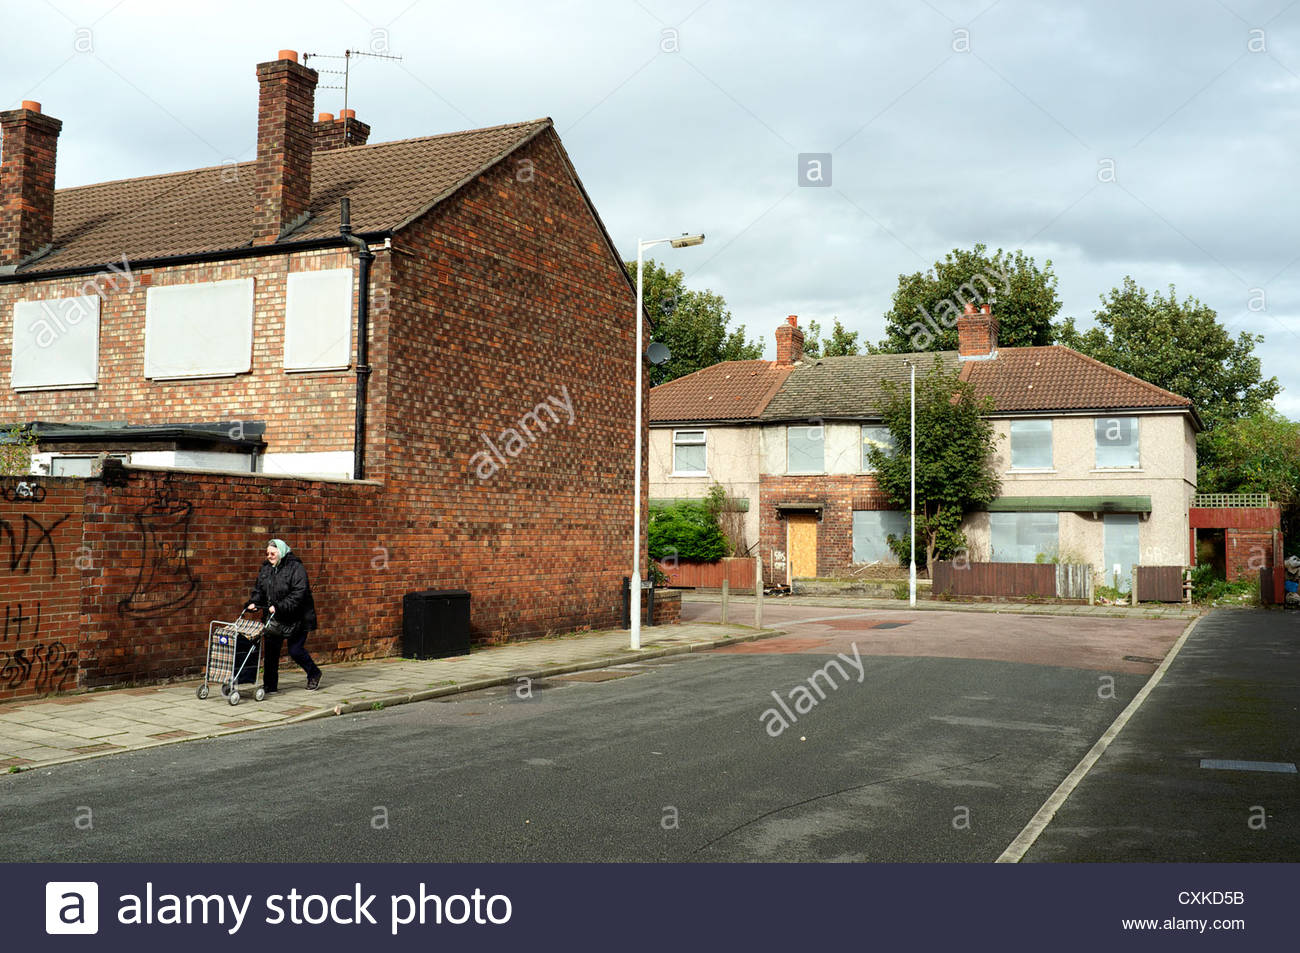 Derelict housing on the corner of Plumer St., and Rundle St., in Birkenhead, Wirral, Merseyside, UK. - Stock Image